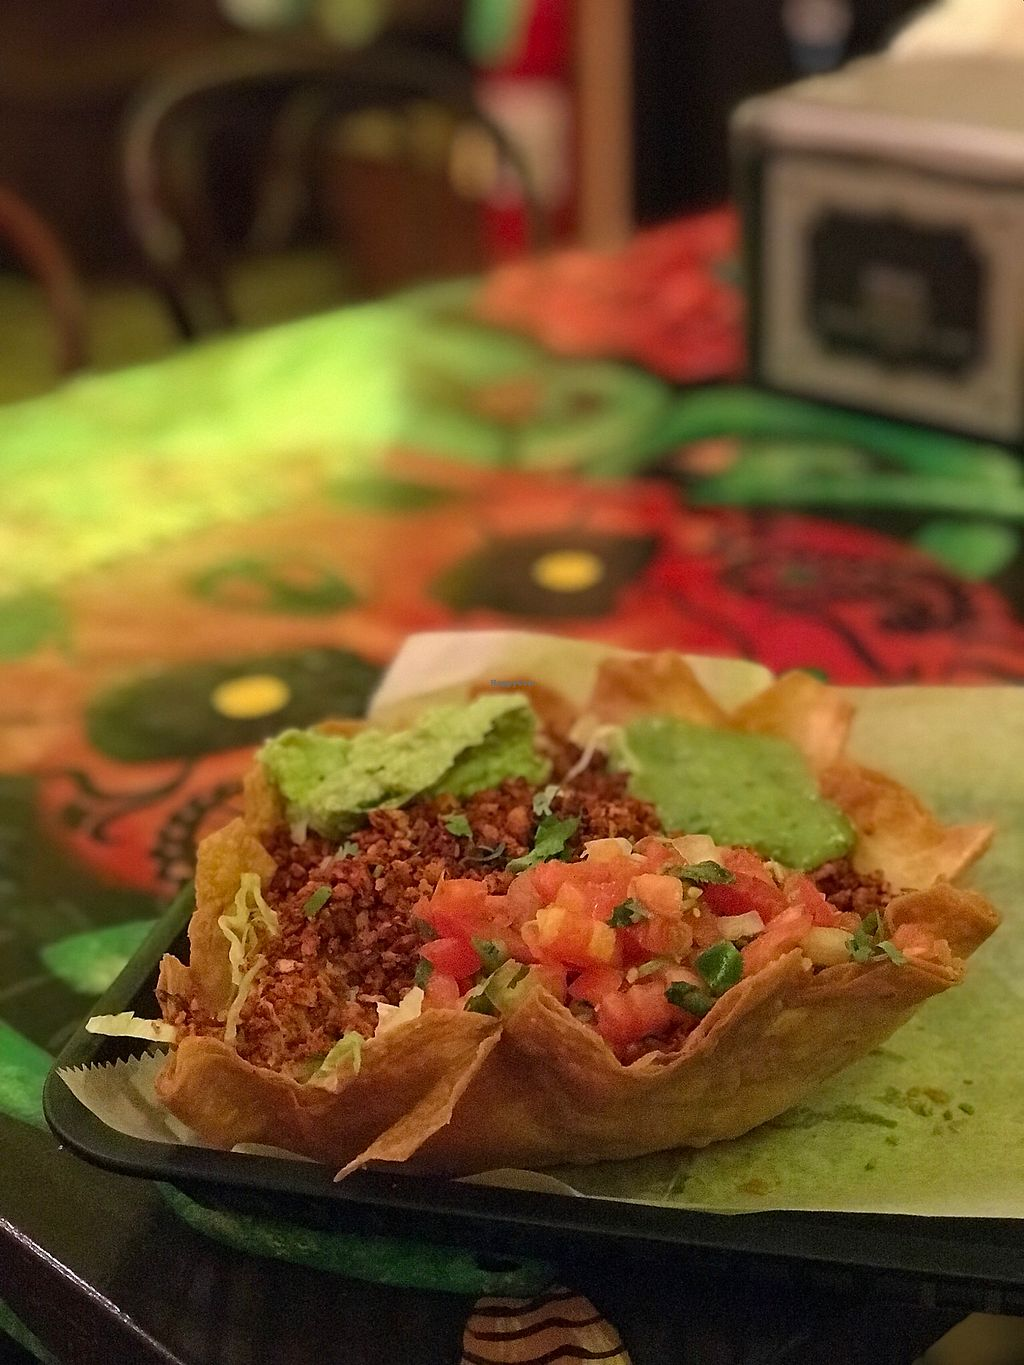 """Photo of El Burro - Regent Square  by <a href=""""/members/profile/nlevine94"""">nlevine94</a> <br/>Flying Saucer: flour tortilla deep fried, lettuce, rice, retried beans, pico, guac, avocado salad, and vegan chorizo (added). The bomb! <br/> November 25, 2017  - <a href='/contact/abuse/image/105872/328878'>Report</a>"""